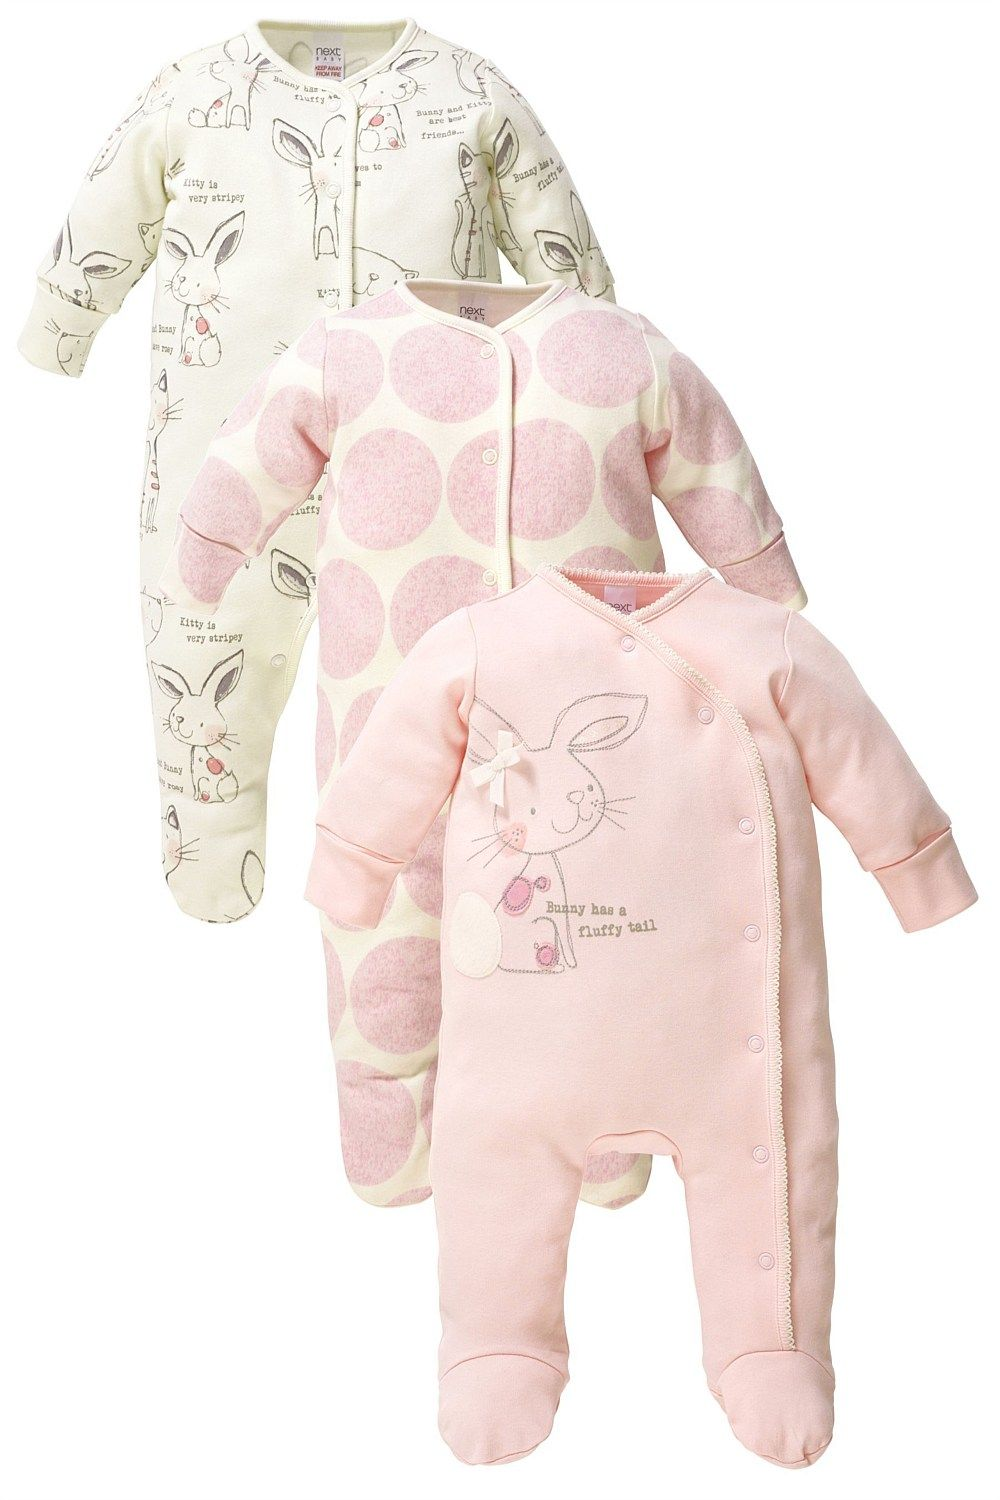 First Size 0-3 High Quality Girls' Clothing (0-24 Months) Set Of 2 Next Bunny Baby Grows Sleepsuits Girls